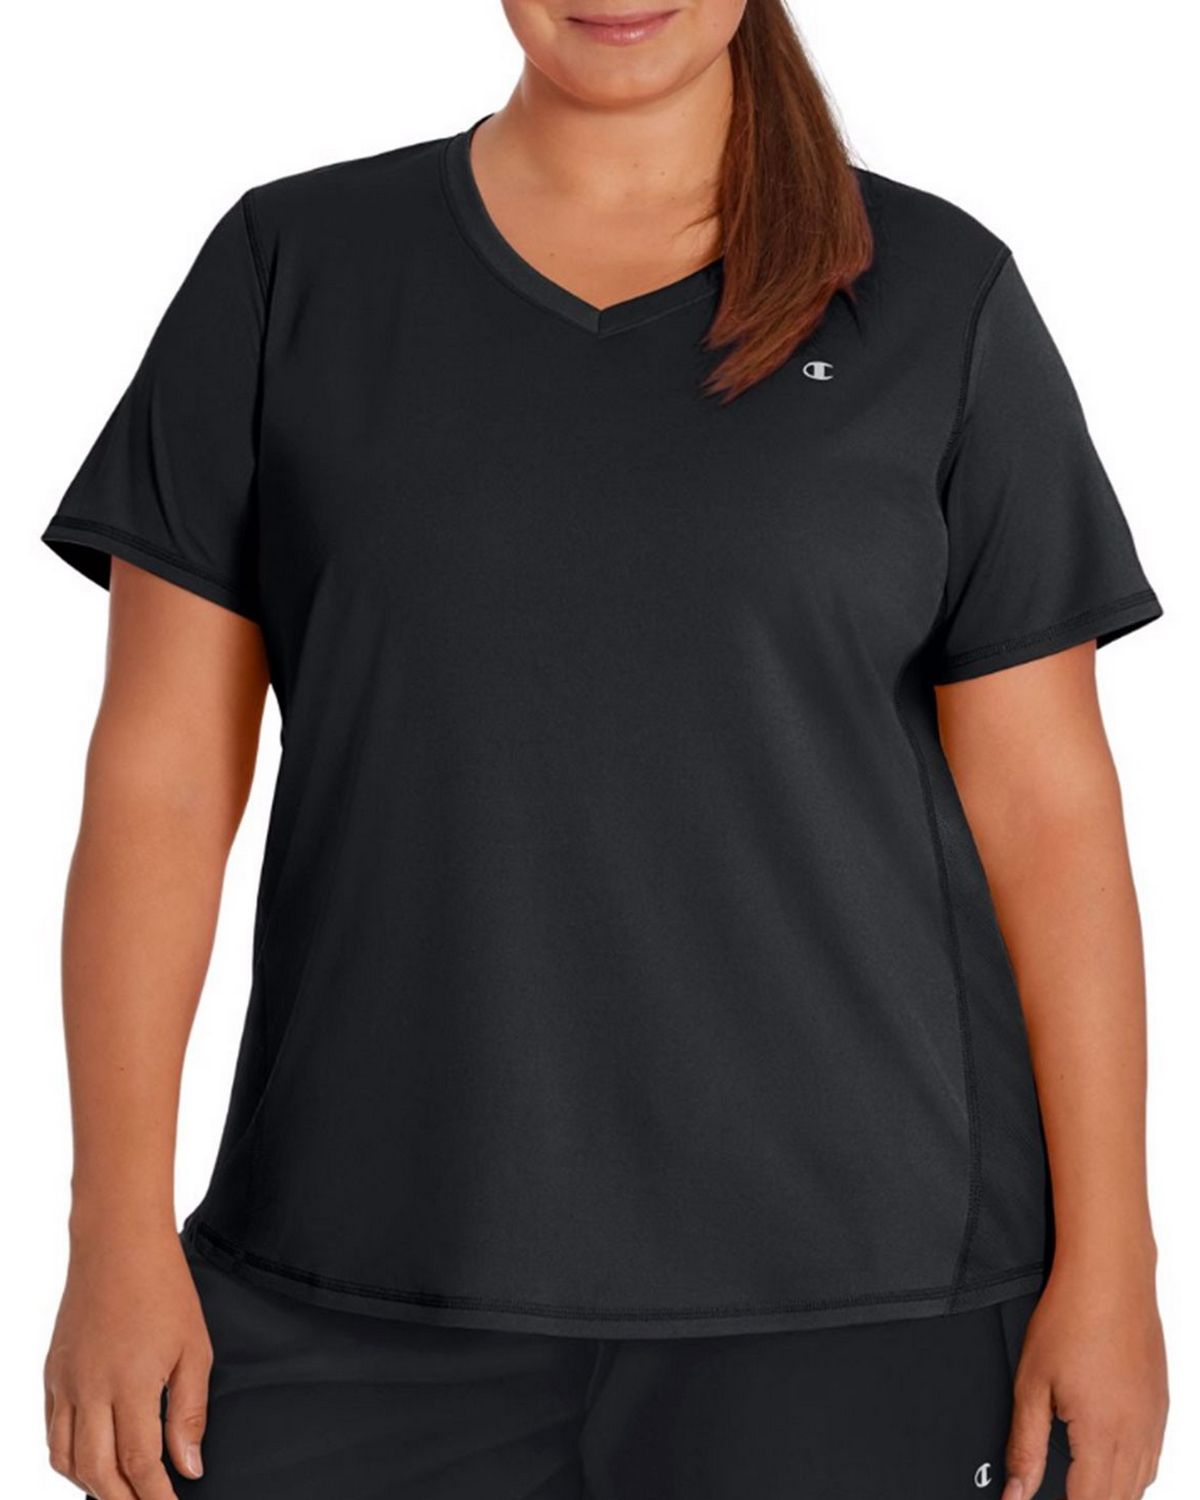 Champion QW5401 Vapor Womens Plus Tee - Black - XL QW5401